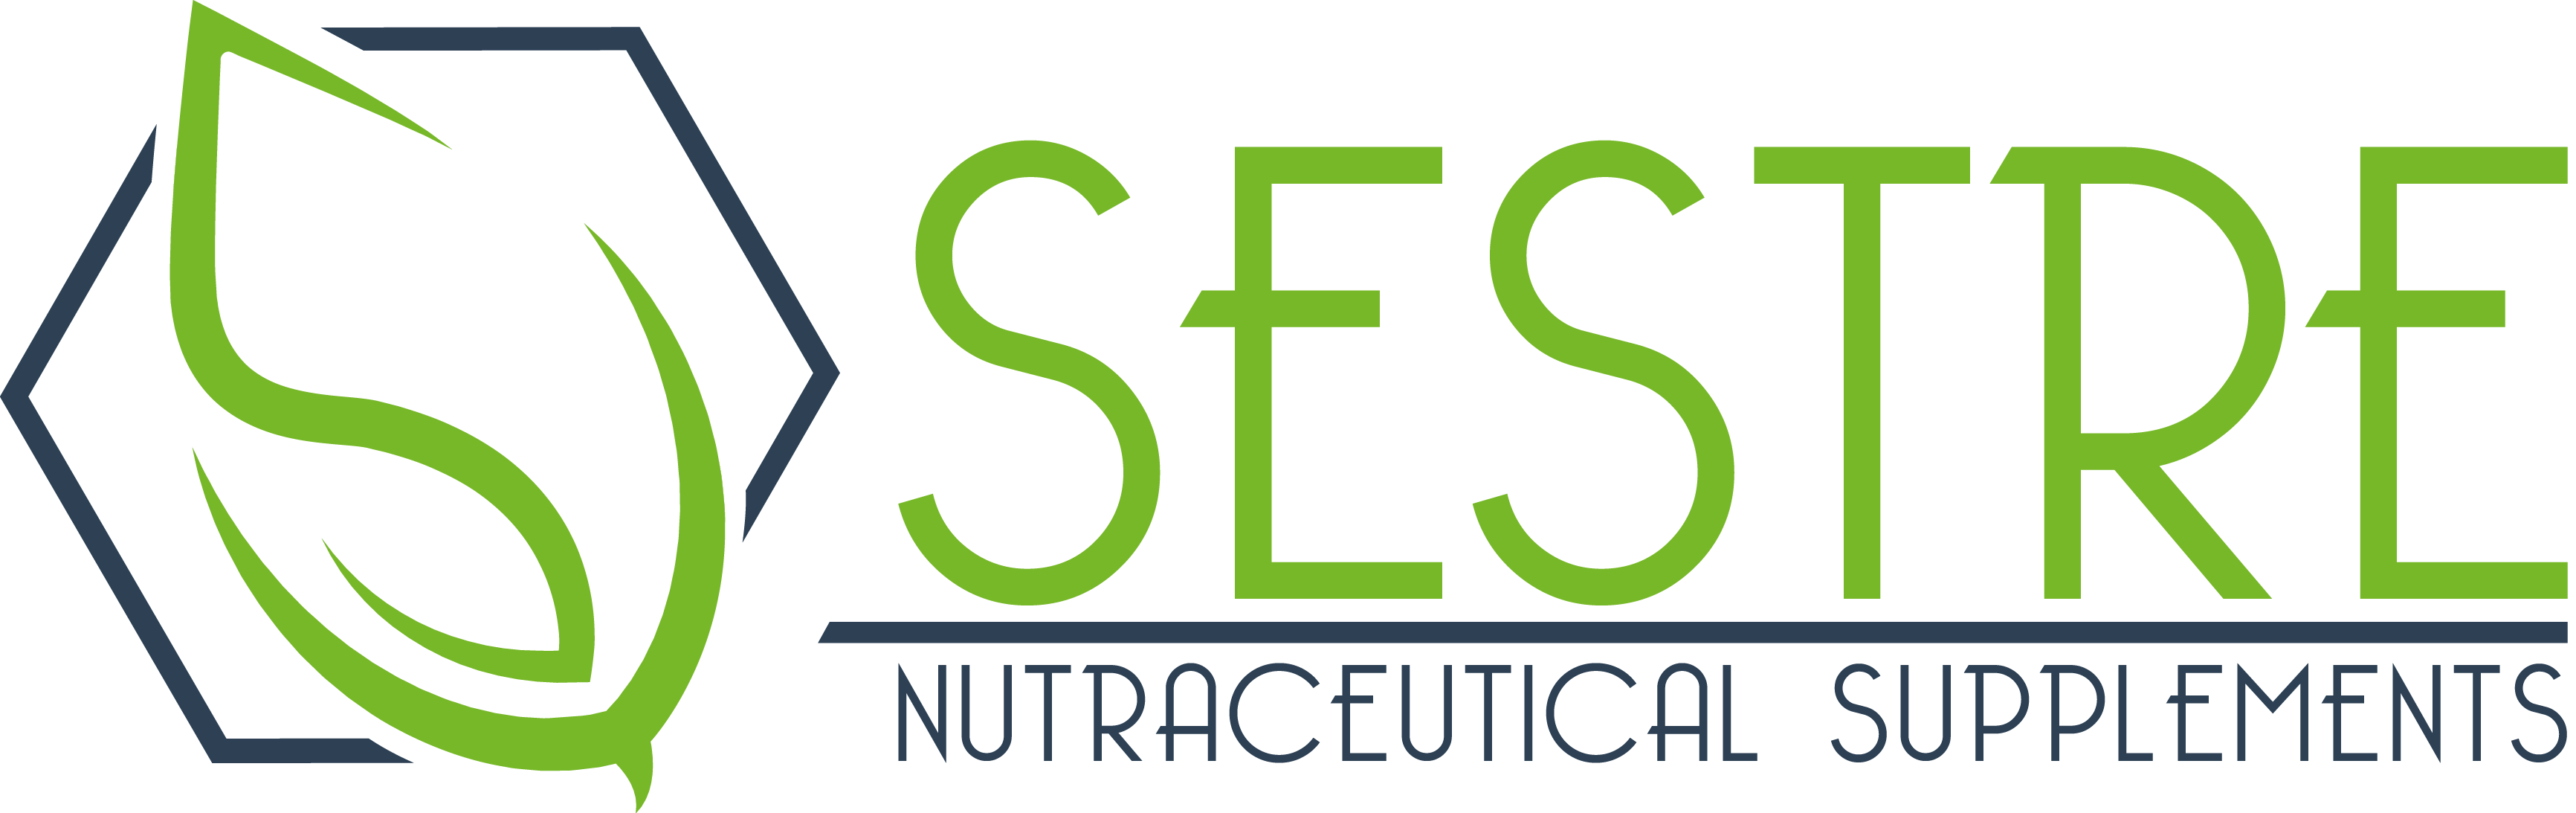 image_startup_SESTRE|nutraceutical supplements